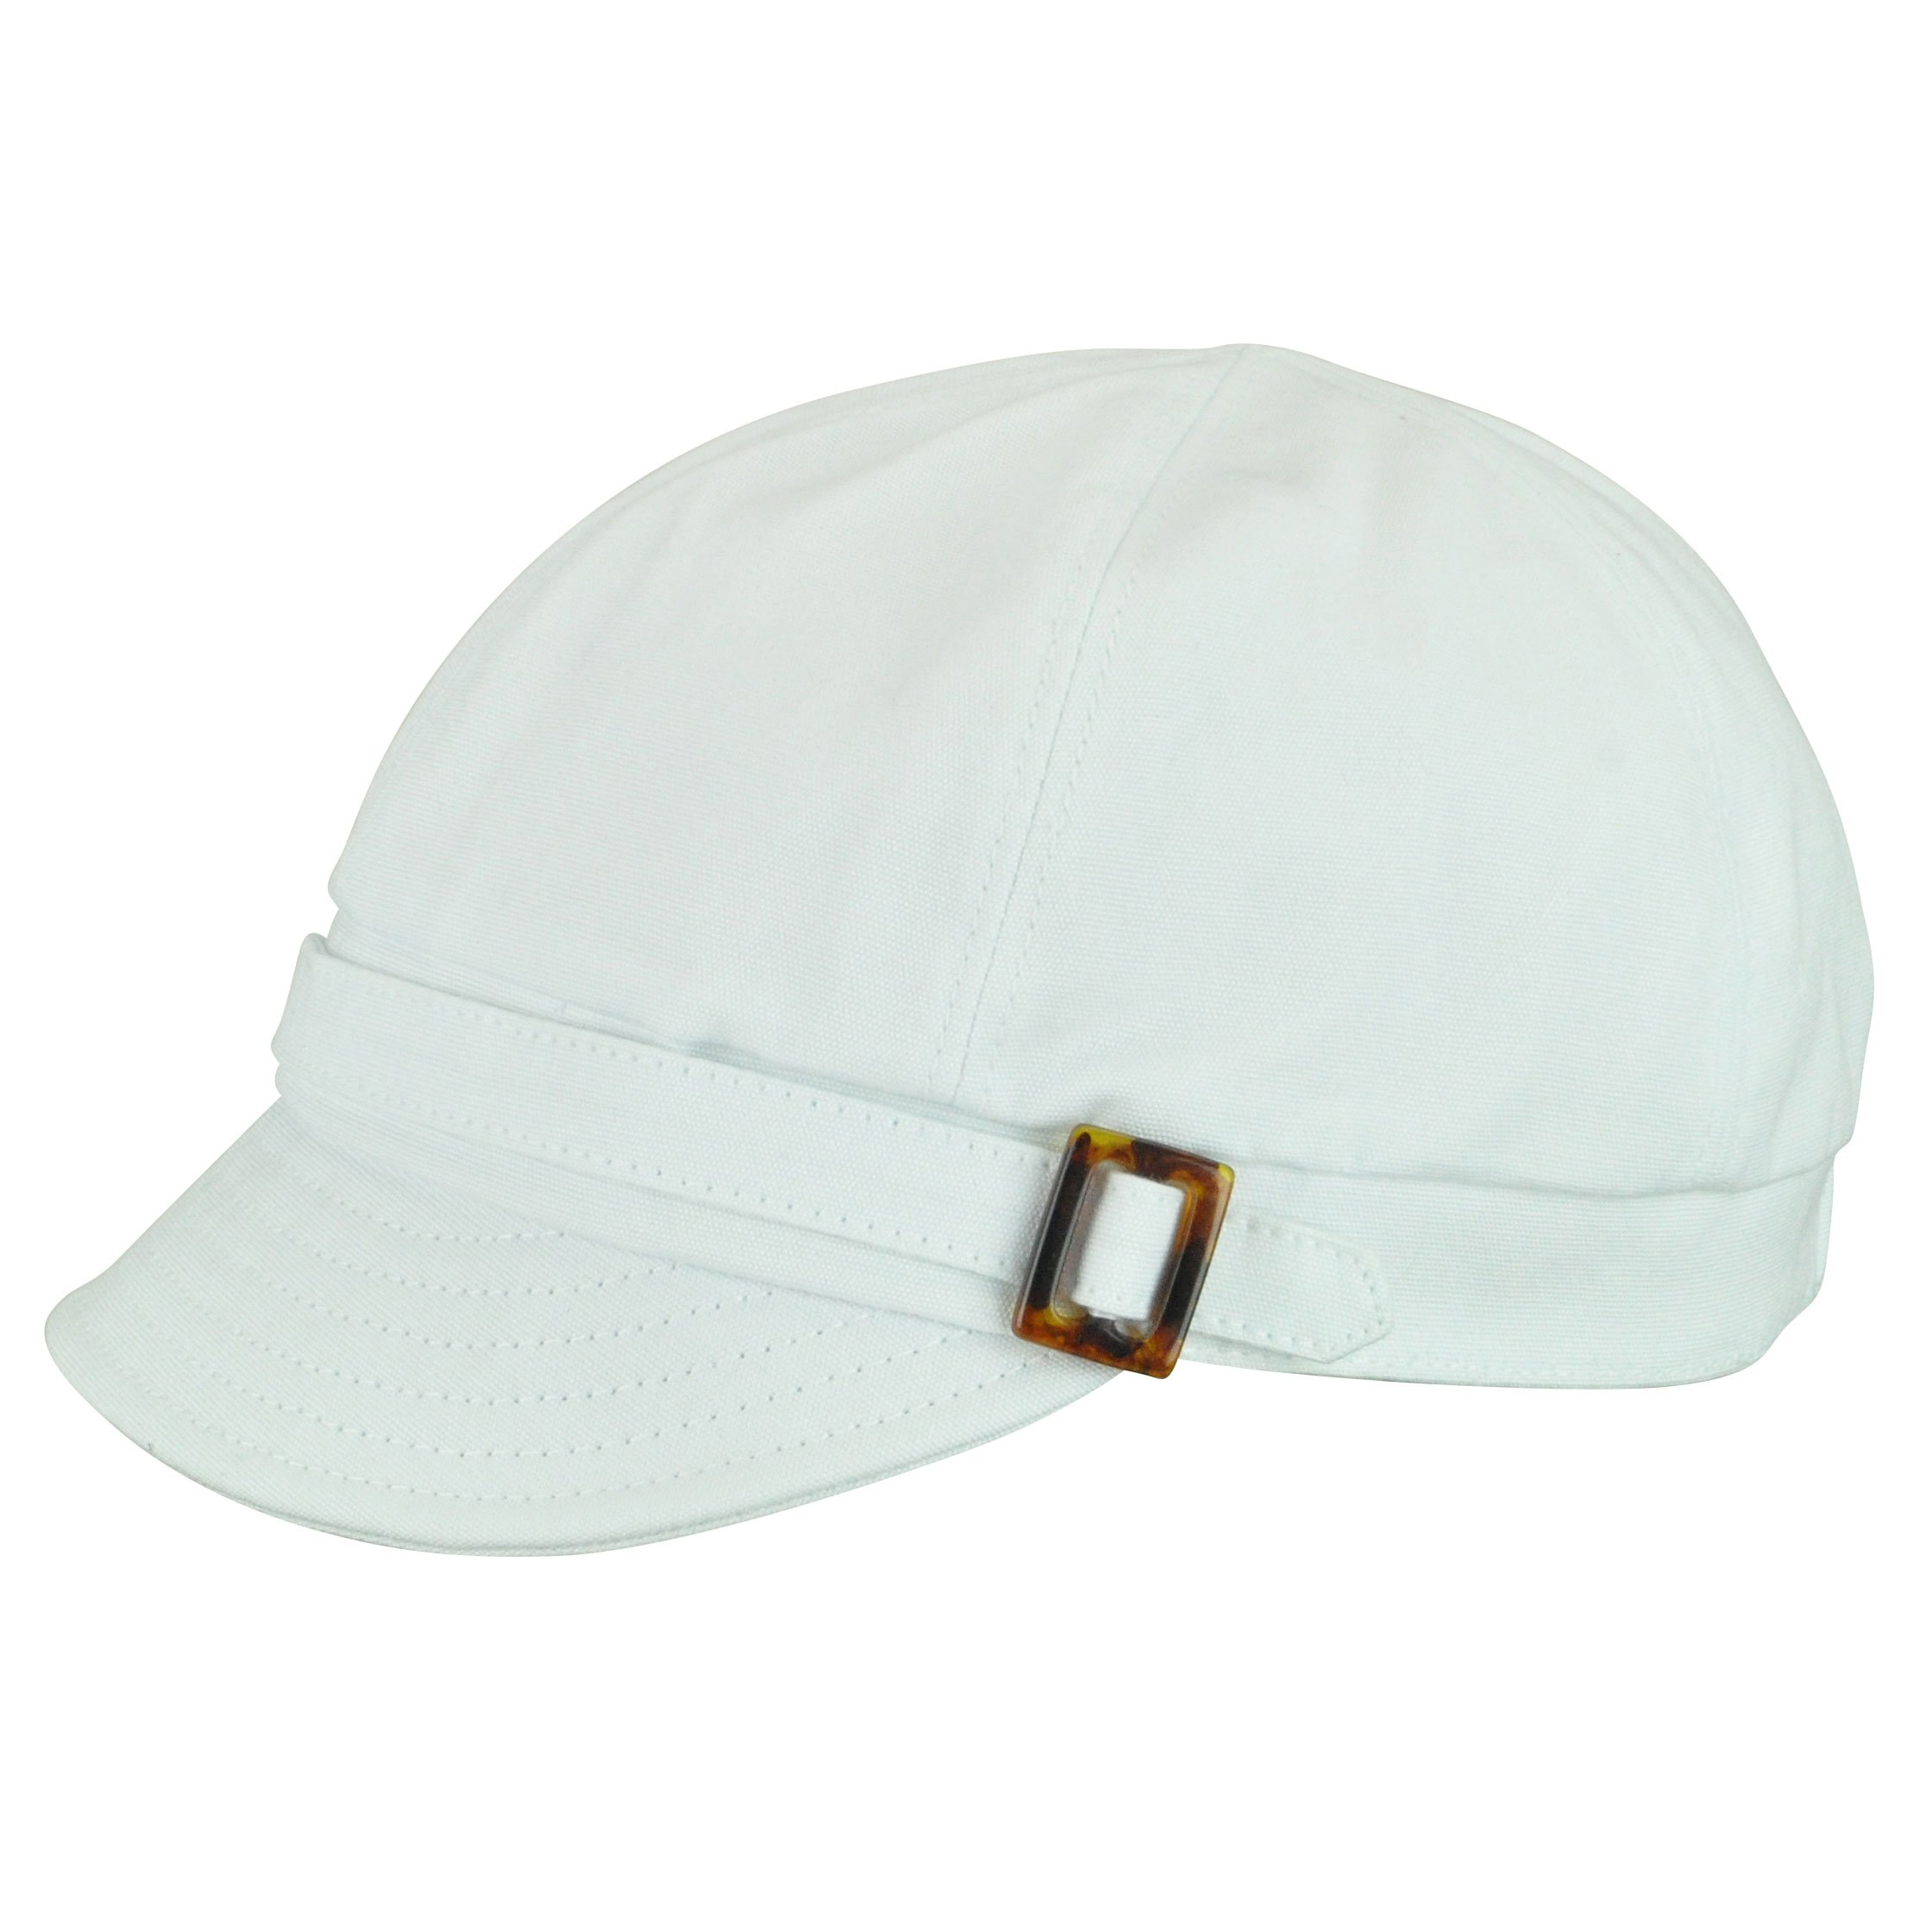 Betmar Women's Aimee Newsboy Cap, White, One Size